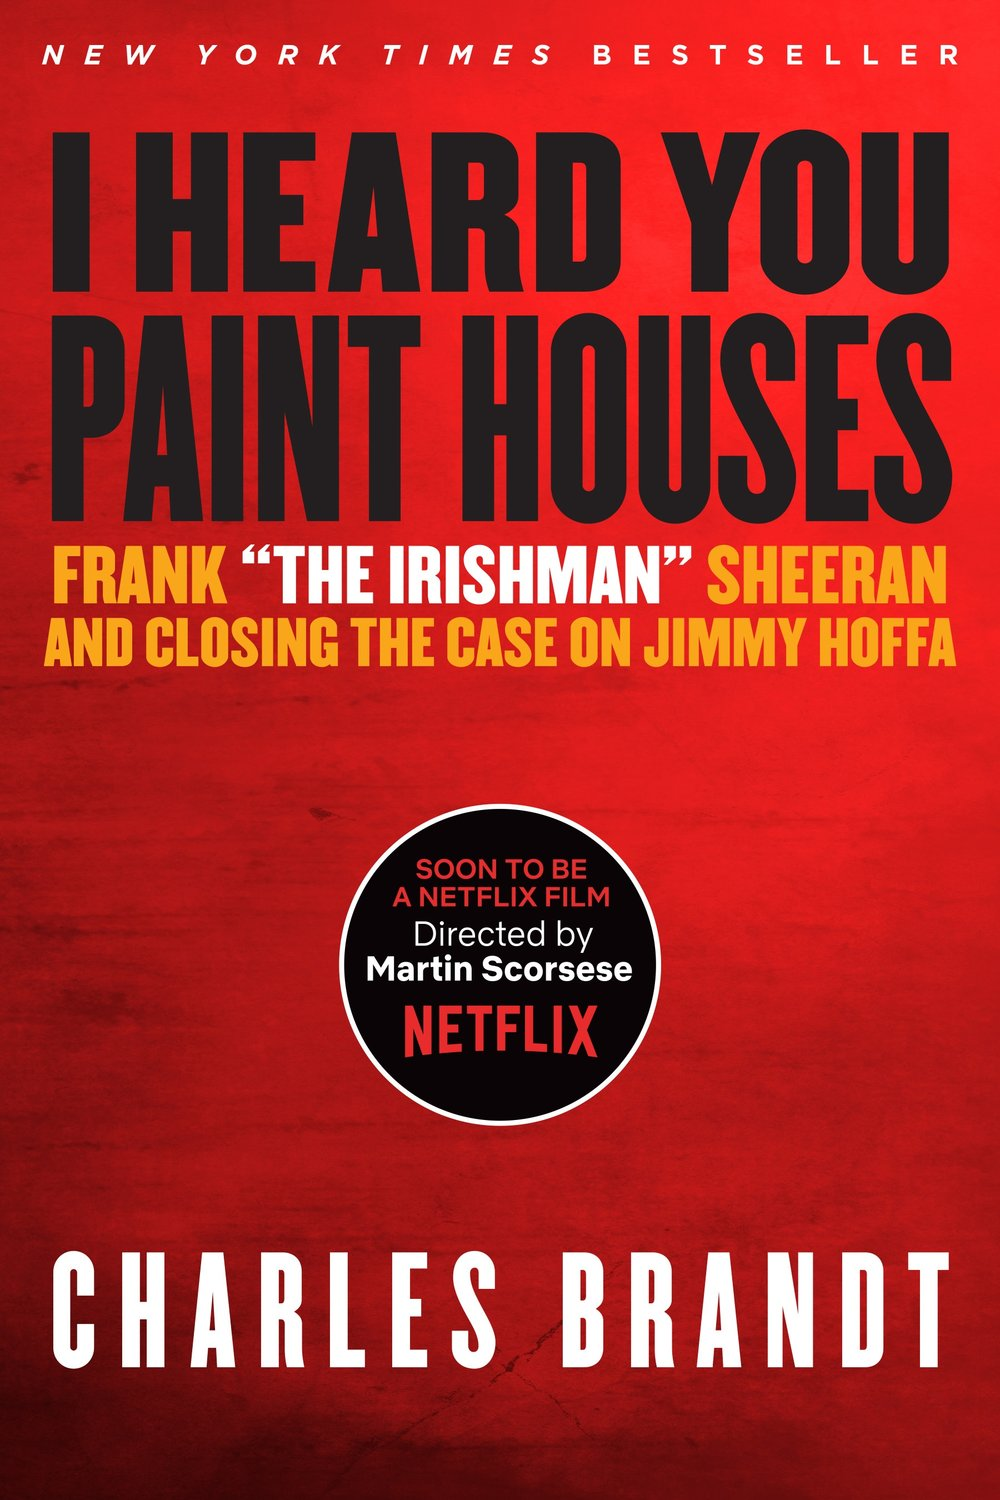 From Penguin Random House     About I Heard You Paint Houses, Soon to be a NETFLIX film directed by Martin Scorsese, starring Robert De Niro, Al Pacino, Joe Pesci and Harvey Keitel, and written by Steven Zaillian. Updated with a 57-page Conclusion by the author that features new, independent corroboration of Frank Sheeran's revelations about the killing of Jimmy Hoffa, the killing of Joey Gallo and the murder of JFK, along with stories that could not be told before.